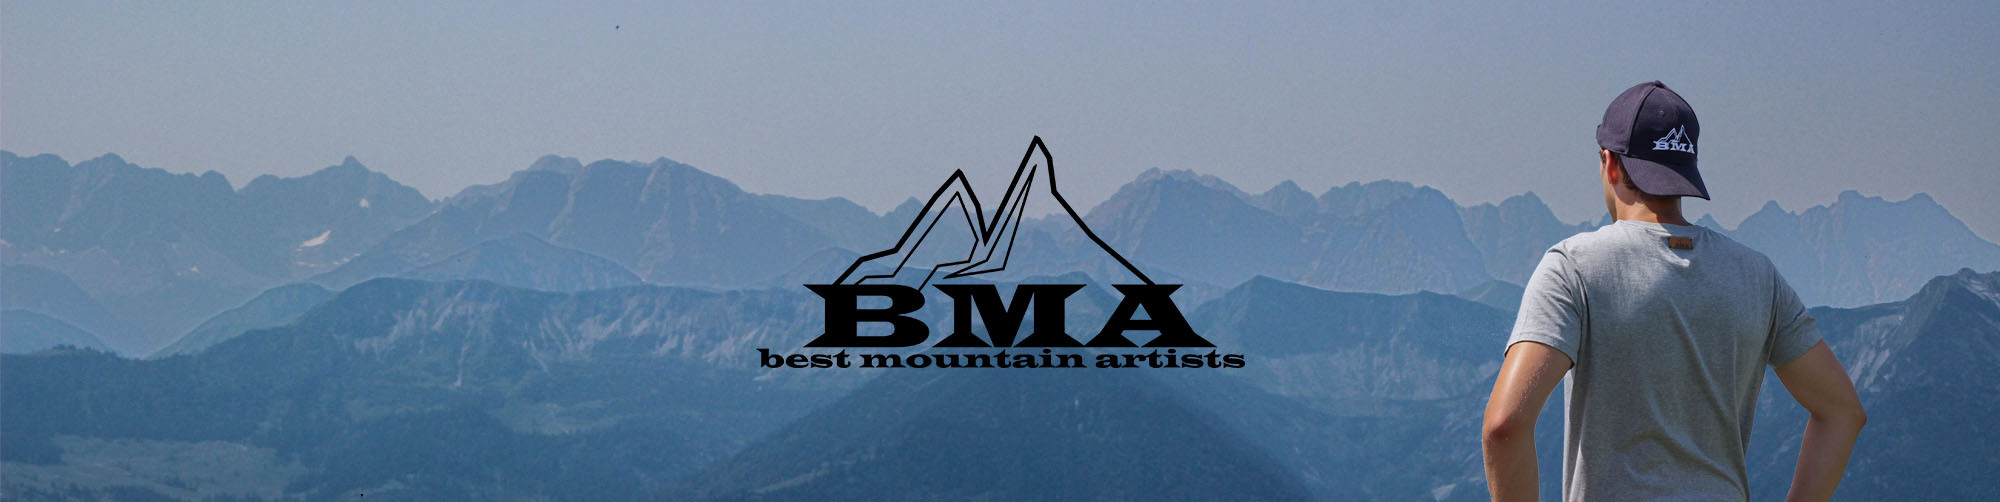 Best Mountain Artists